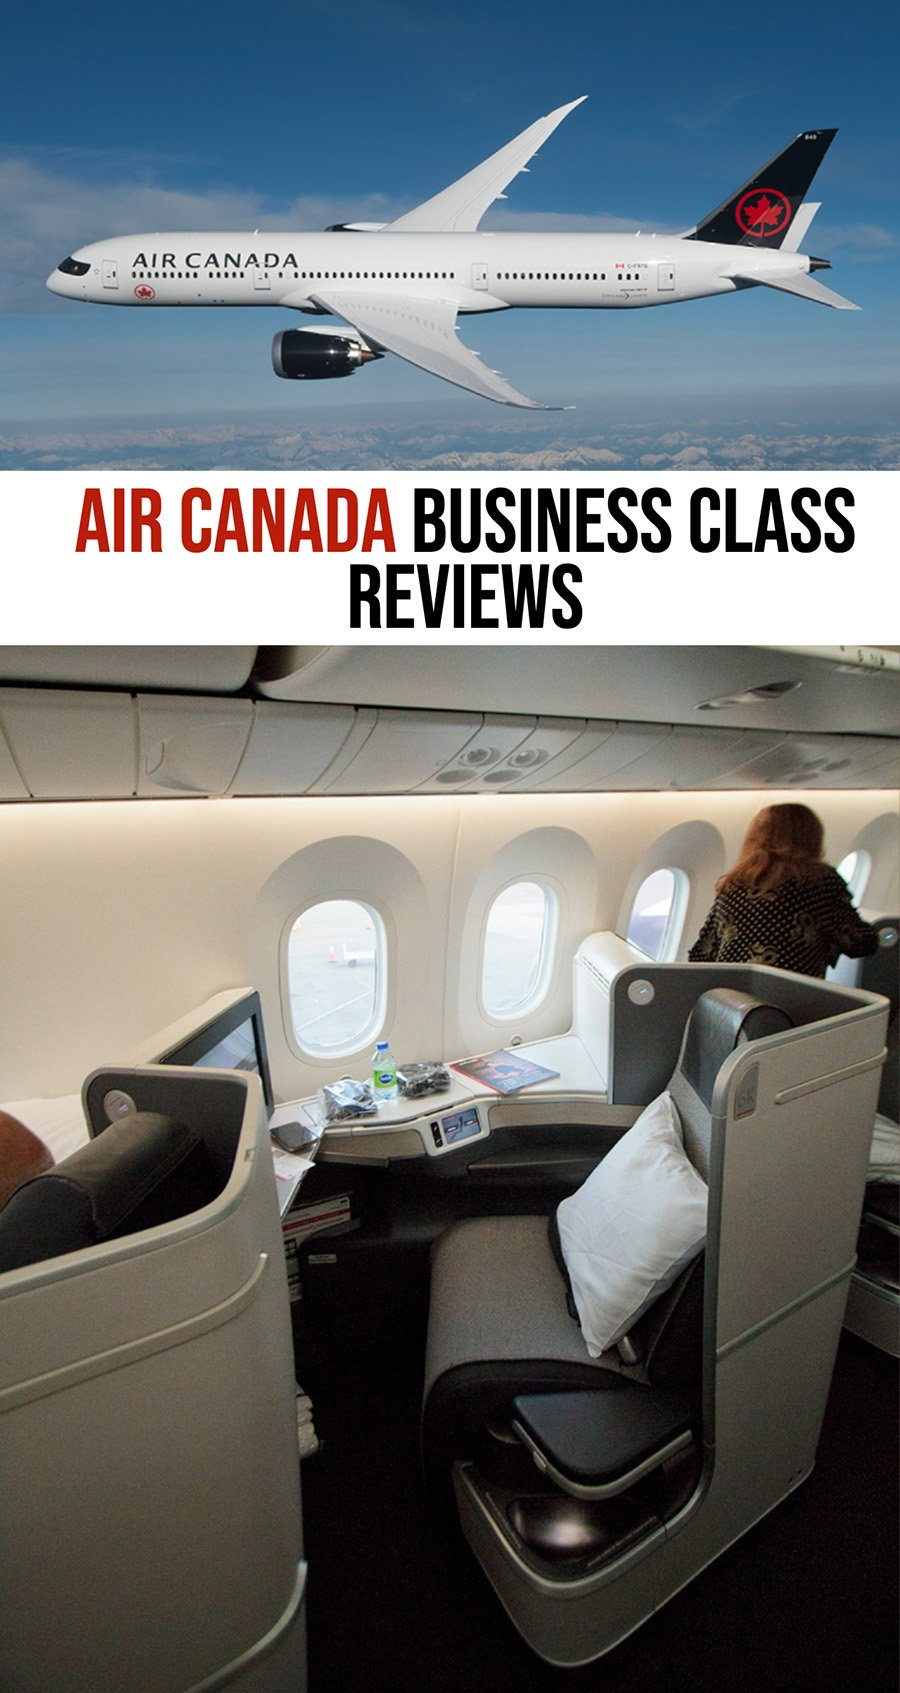 Air Canada Business Class Reviews